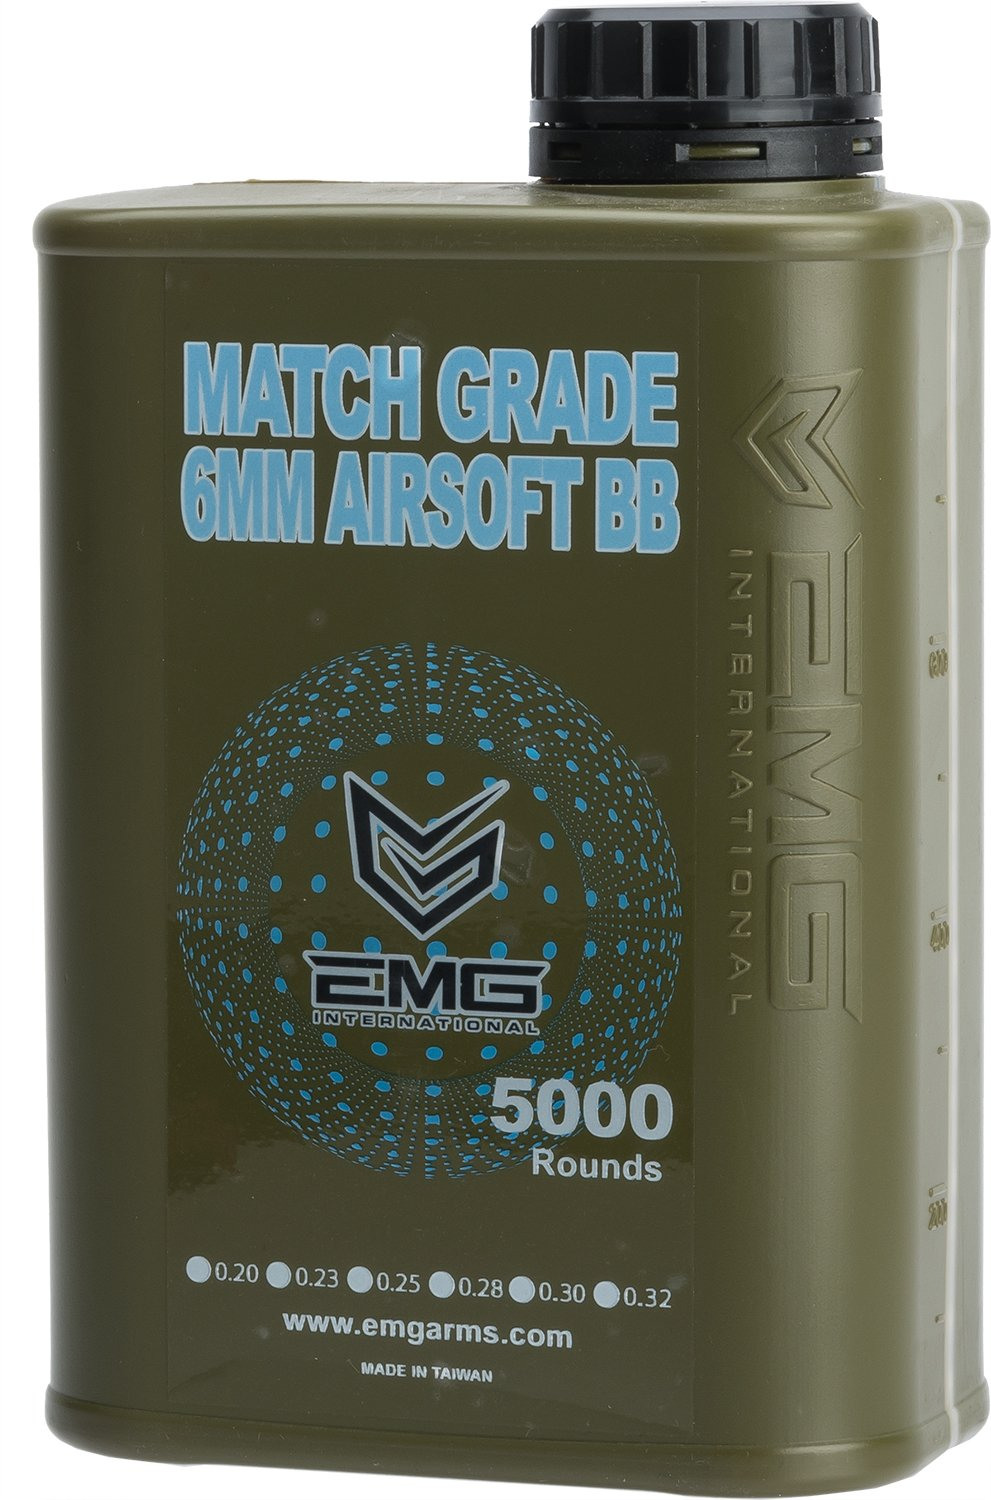 Evike - EMG International Match Grade 6mm Airsoft BBS - 5000 Rounds (Weight: .20g)